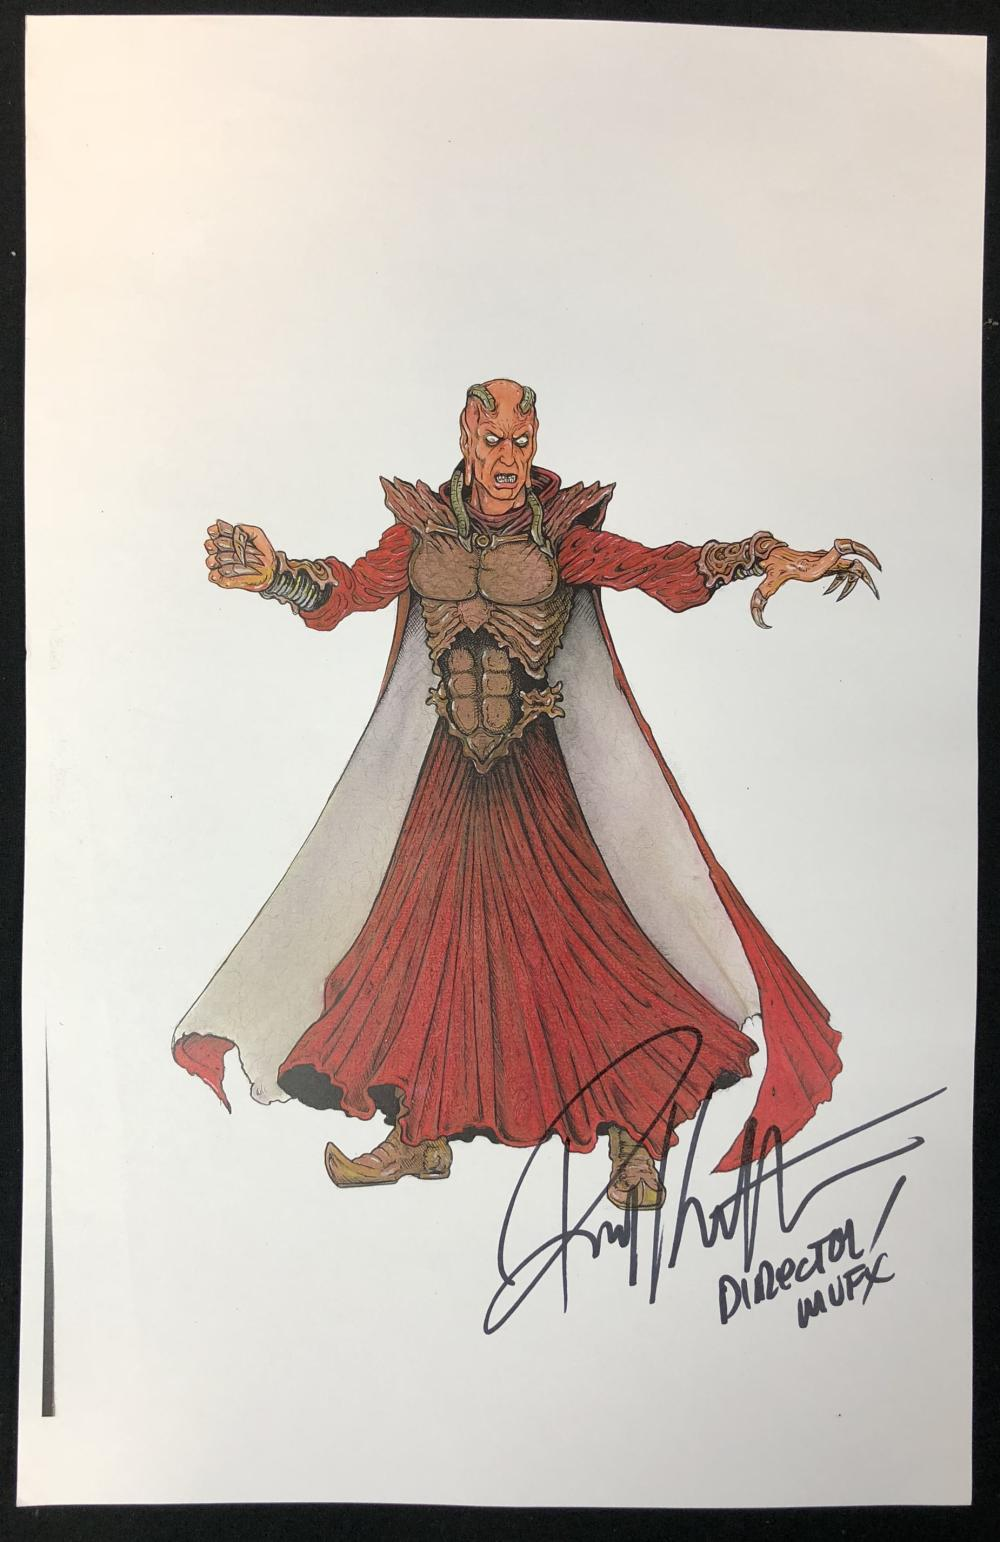 Lot 195: Wishmaster (1997) - Djinn Color Concept Artwork Signed by Director Robert Kurtzman